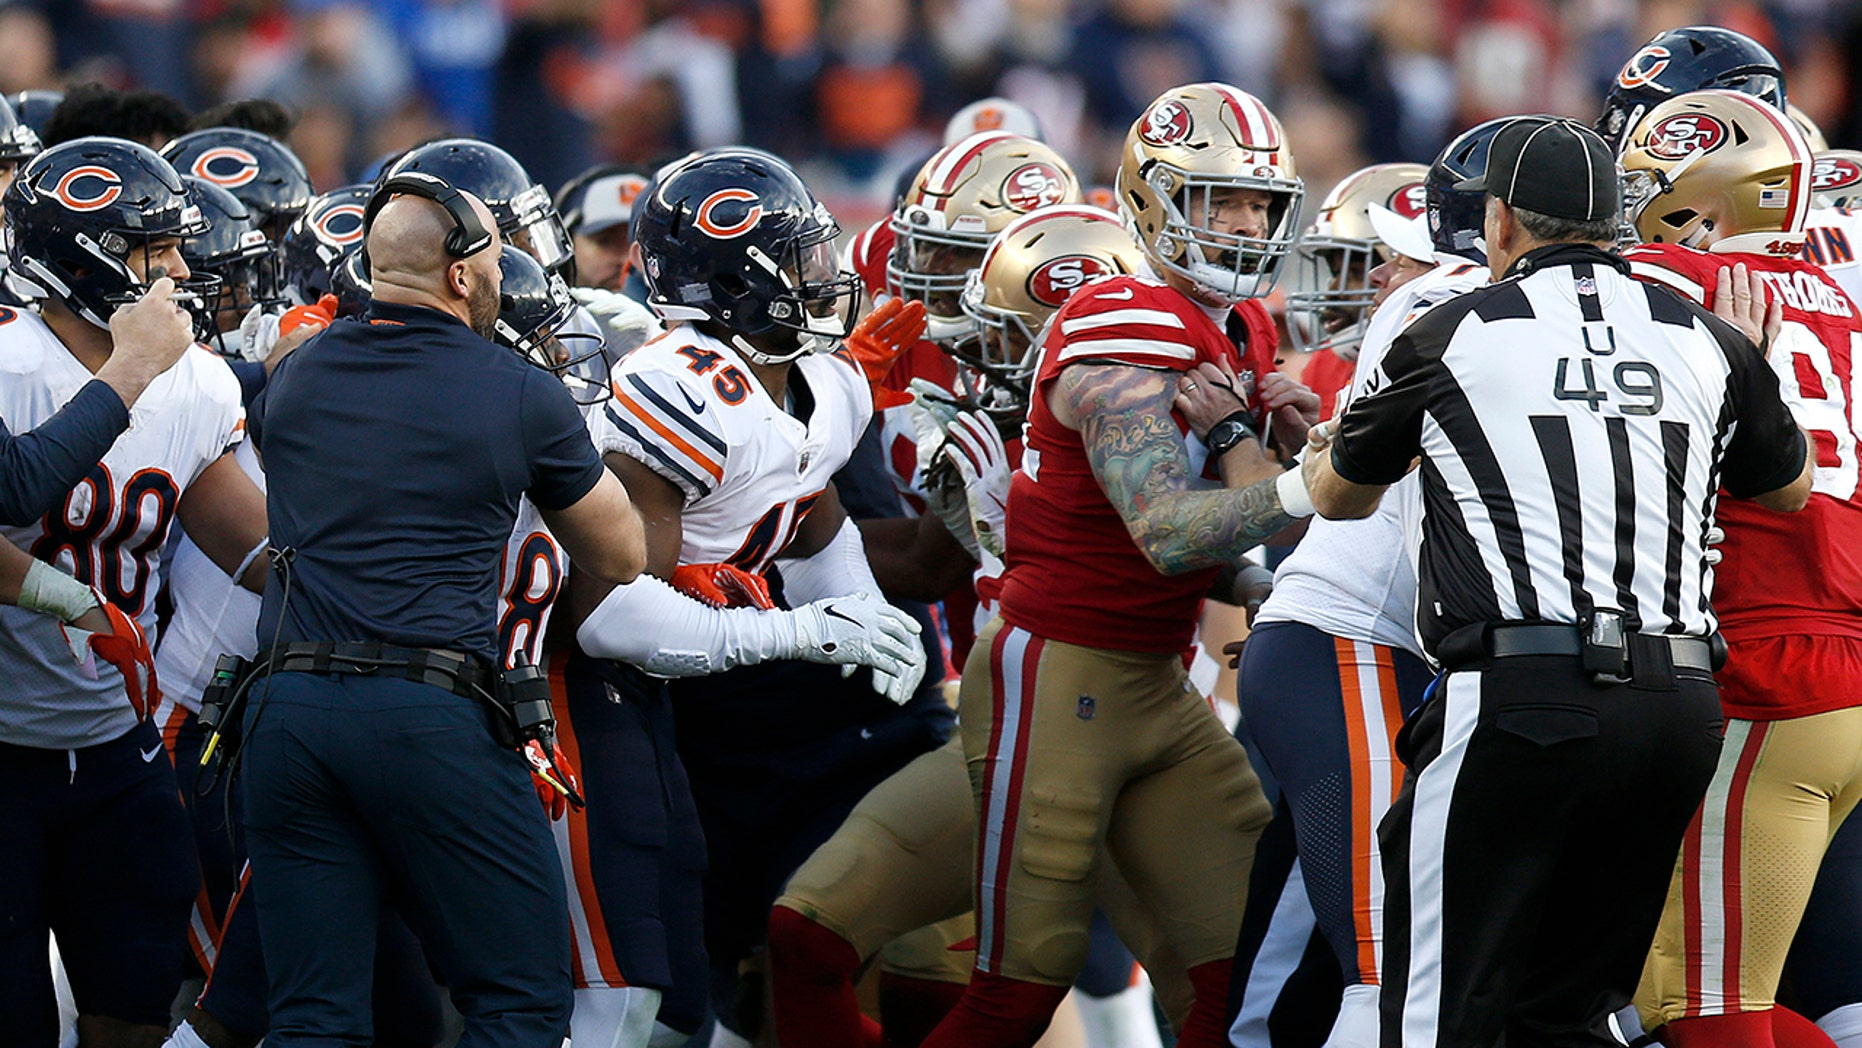 Sherman, two others ejected after Bears-49ers melee